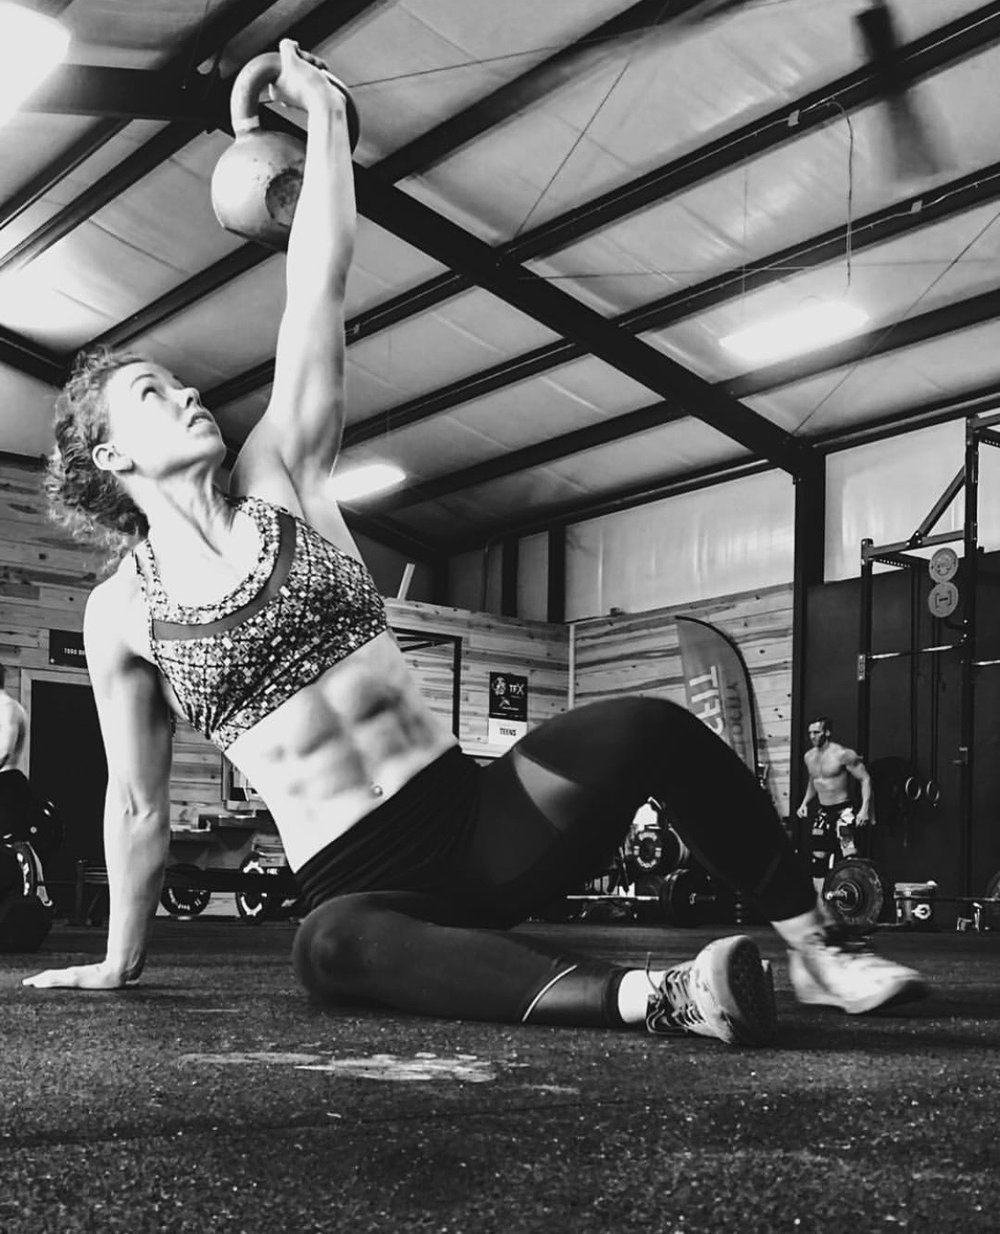 Beth - I've got this goal like I've never had before. I've been asked a lot lately what I've changed. Honestly the list is long and it all started to fall into place at one time. My back started improving and a fire was lite under me and a realization happened. If I have these big goals in the gym, then why doesn't everything else in my life line up with it as well? I worked with Emily throughout my postpartum journey. She helped me fuel my body with nutritious foods when I was nursing and had plenty of grace for me. These last 3-4 months we've really dialed in not just nutrition, but gut health and how well my organs are functioning in doing what they should. Im not all paleo, or whole30 or keto. I don't count my macros but I have a good idea of where I'm at. The key here for me is to eat foods full of nutrition. I've upped my veggie intake to take up the majority of my plate. It's weird when my meal deviates from the norm now. Eating clean is so much easier after weeks of pushing yourself into it. You not only see a difference but more importantly feel the difference. We also did a Functional Evaluation to see where my nutritional deficiencies where and a plan to get them on track.. I highly recommend looking into an FE to see what/where your body is off course. Once everything starts working as it should, everything else can start to fall into place.